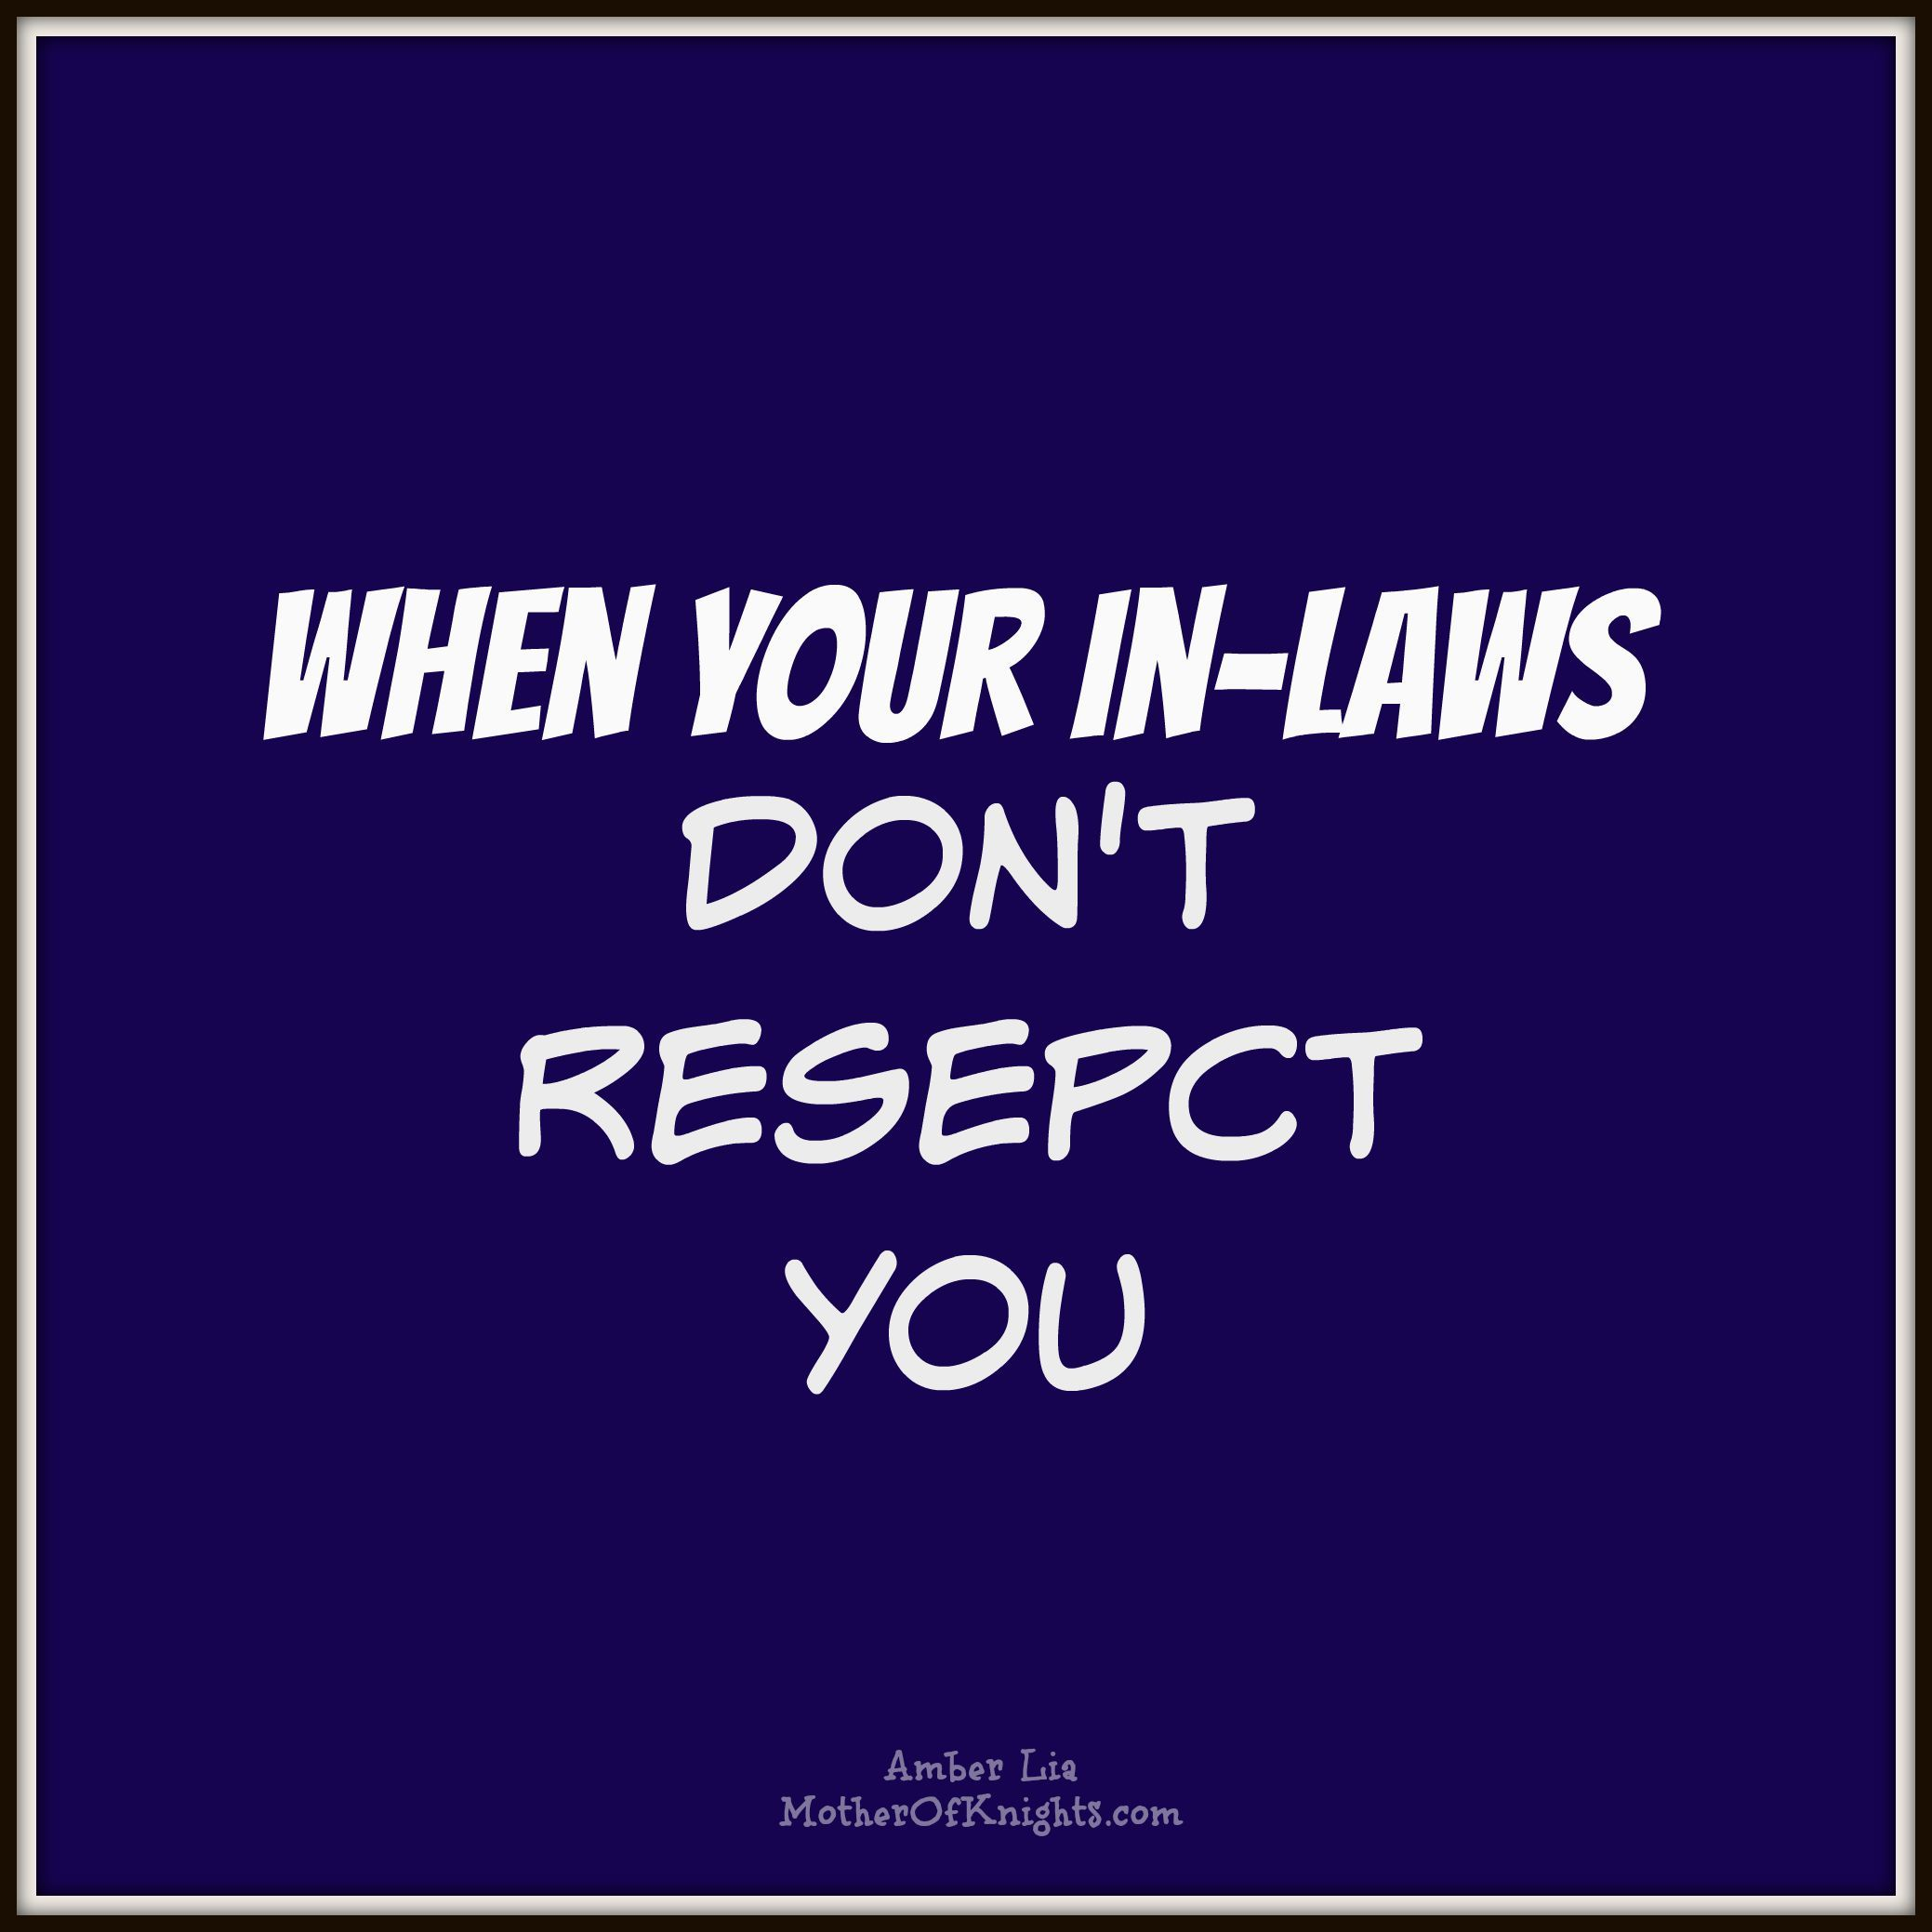 When Your In-Laws Don't Respect You | 10 Creative Christian